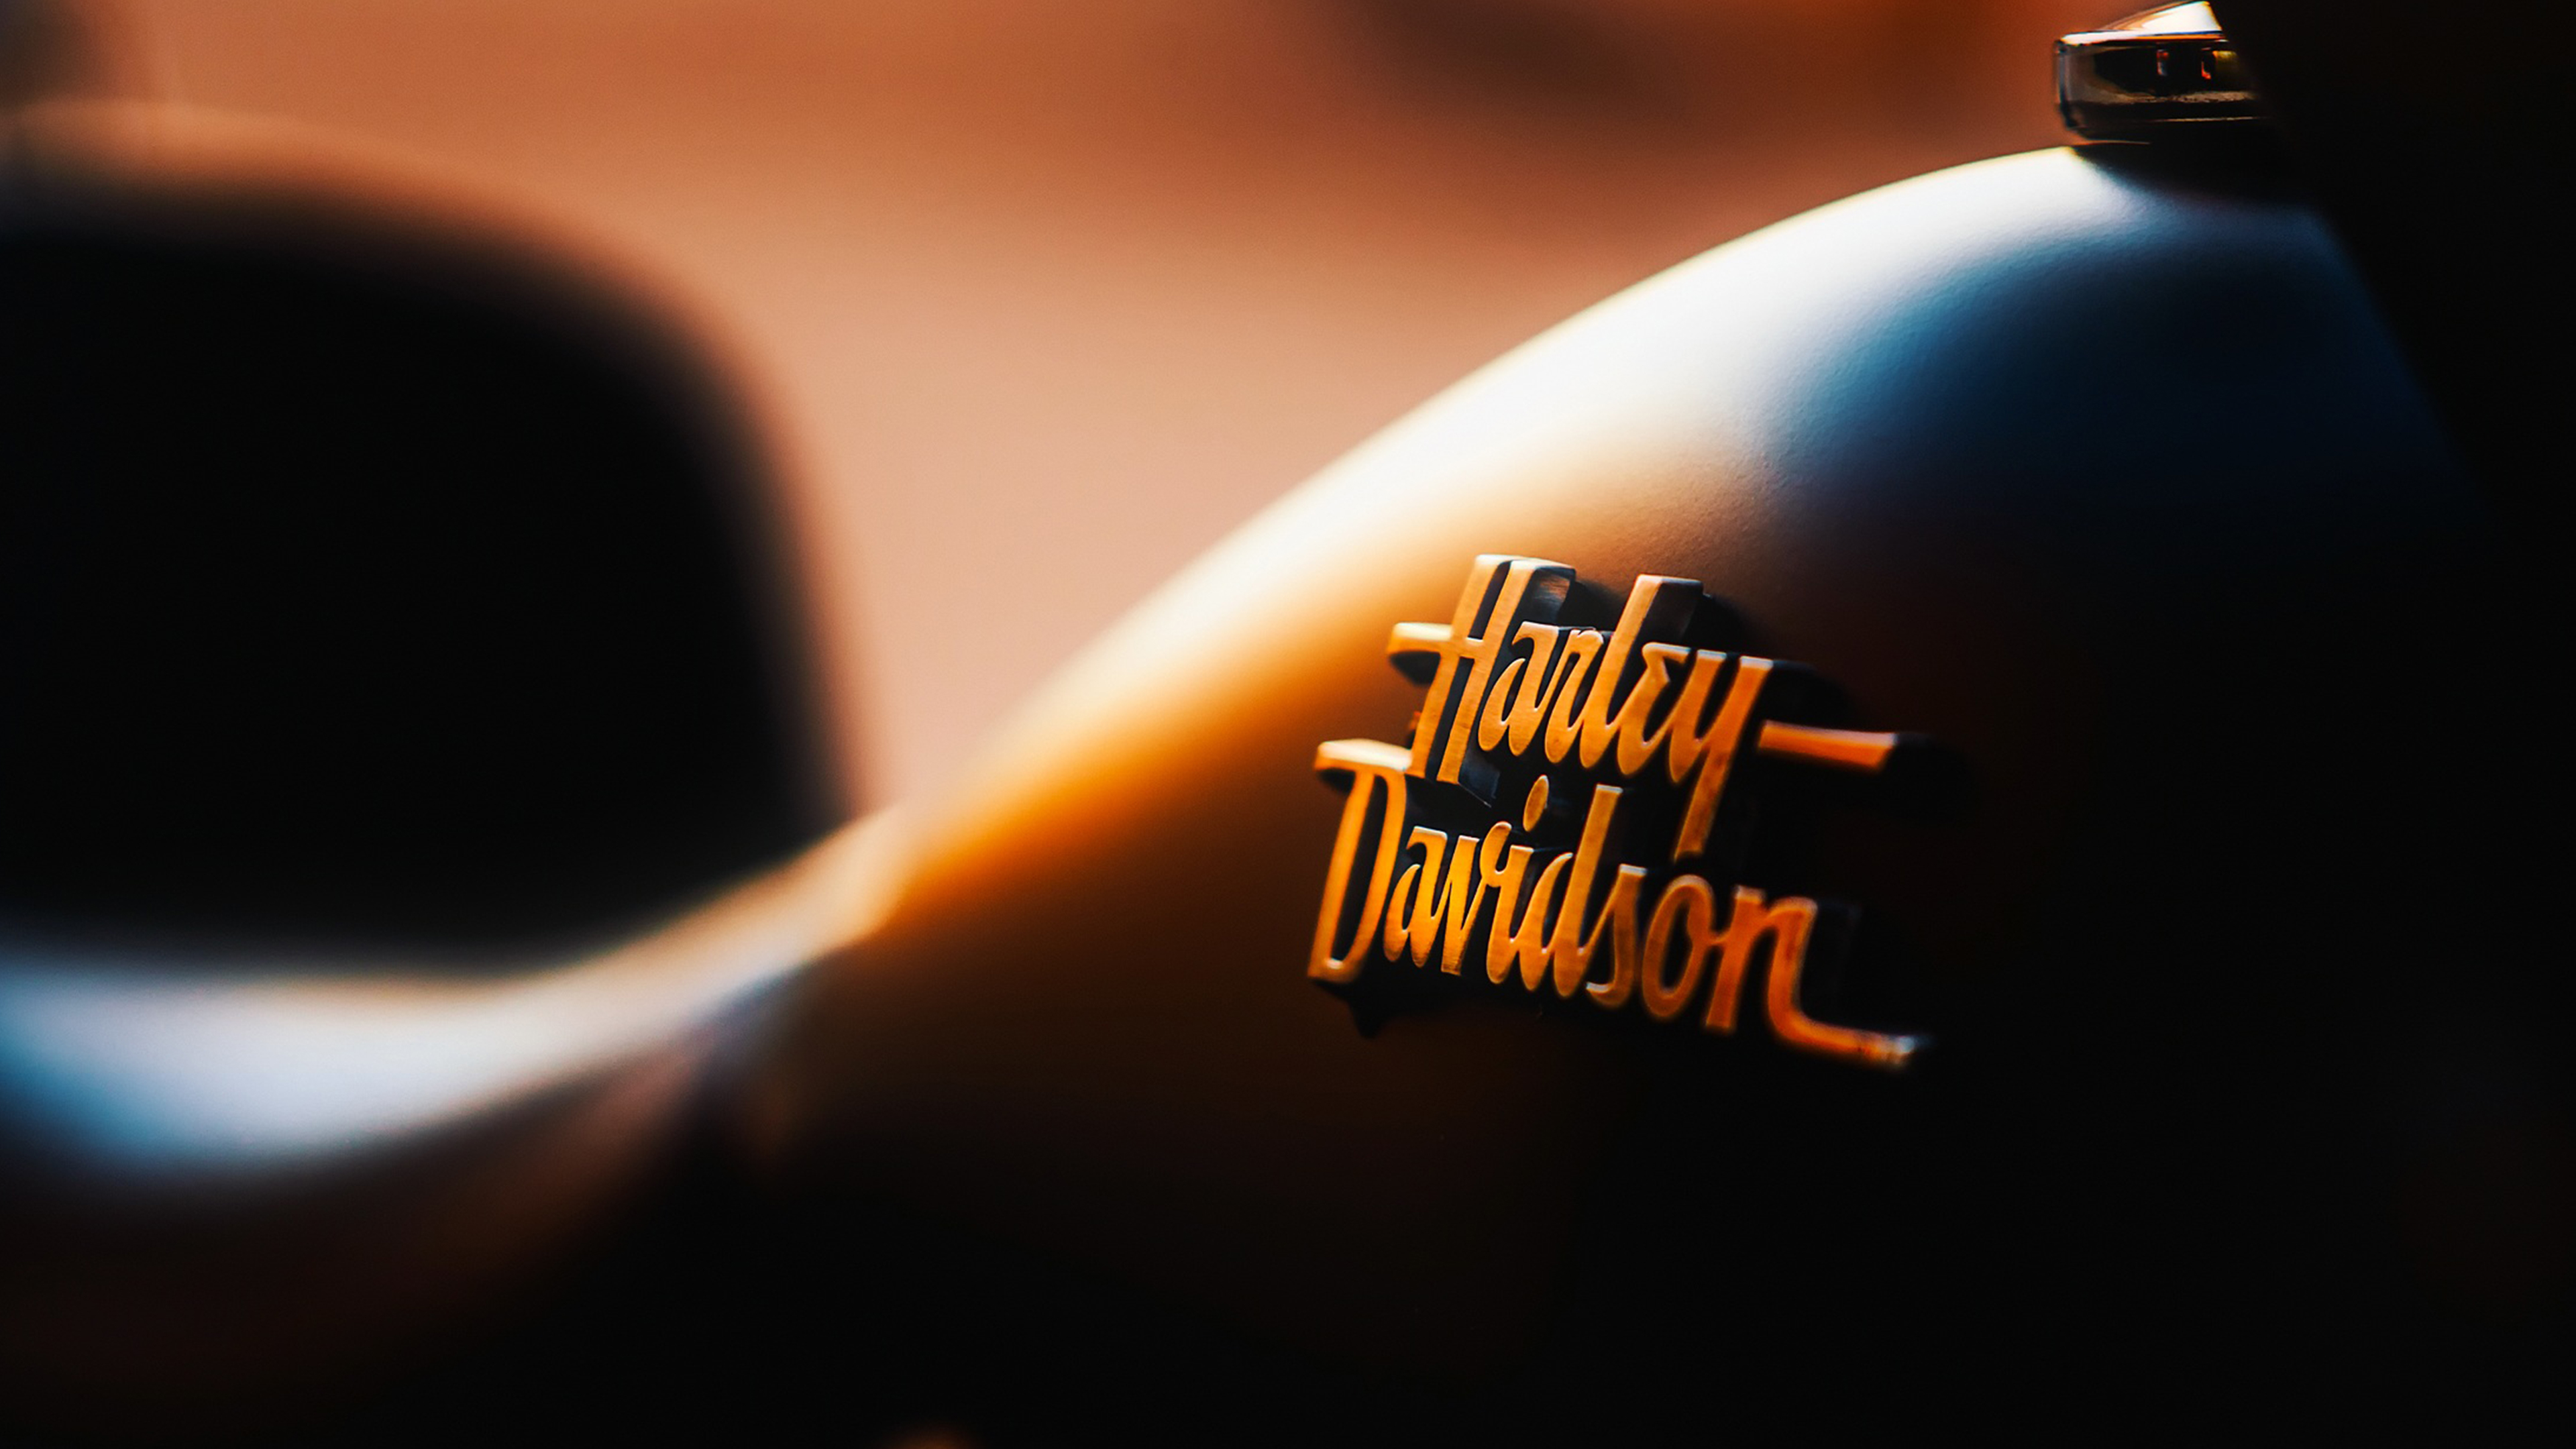 Free harley davidson chromebook wallpaper ready for download harley davidson chromebook wallpaper voltagebd Images